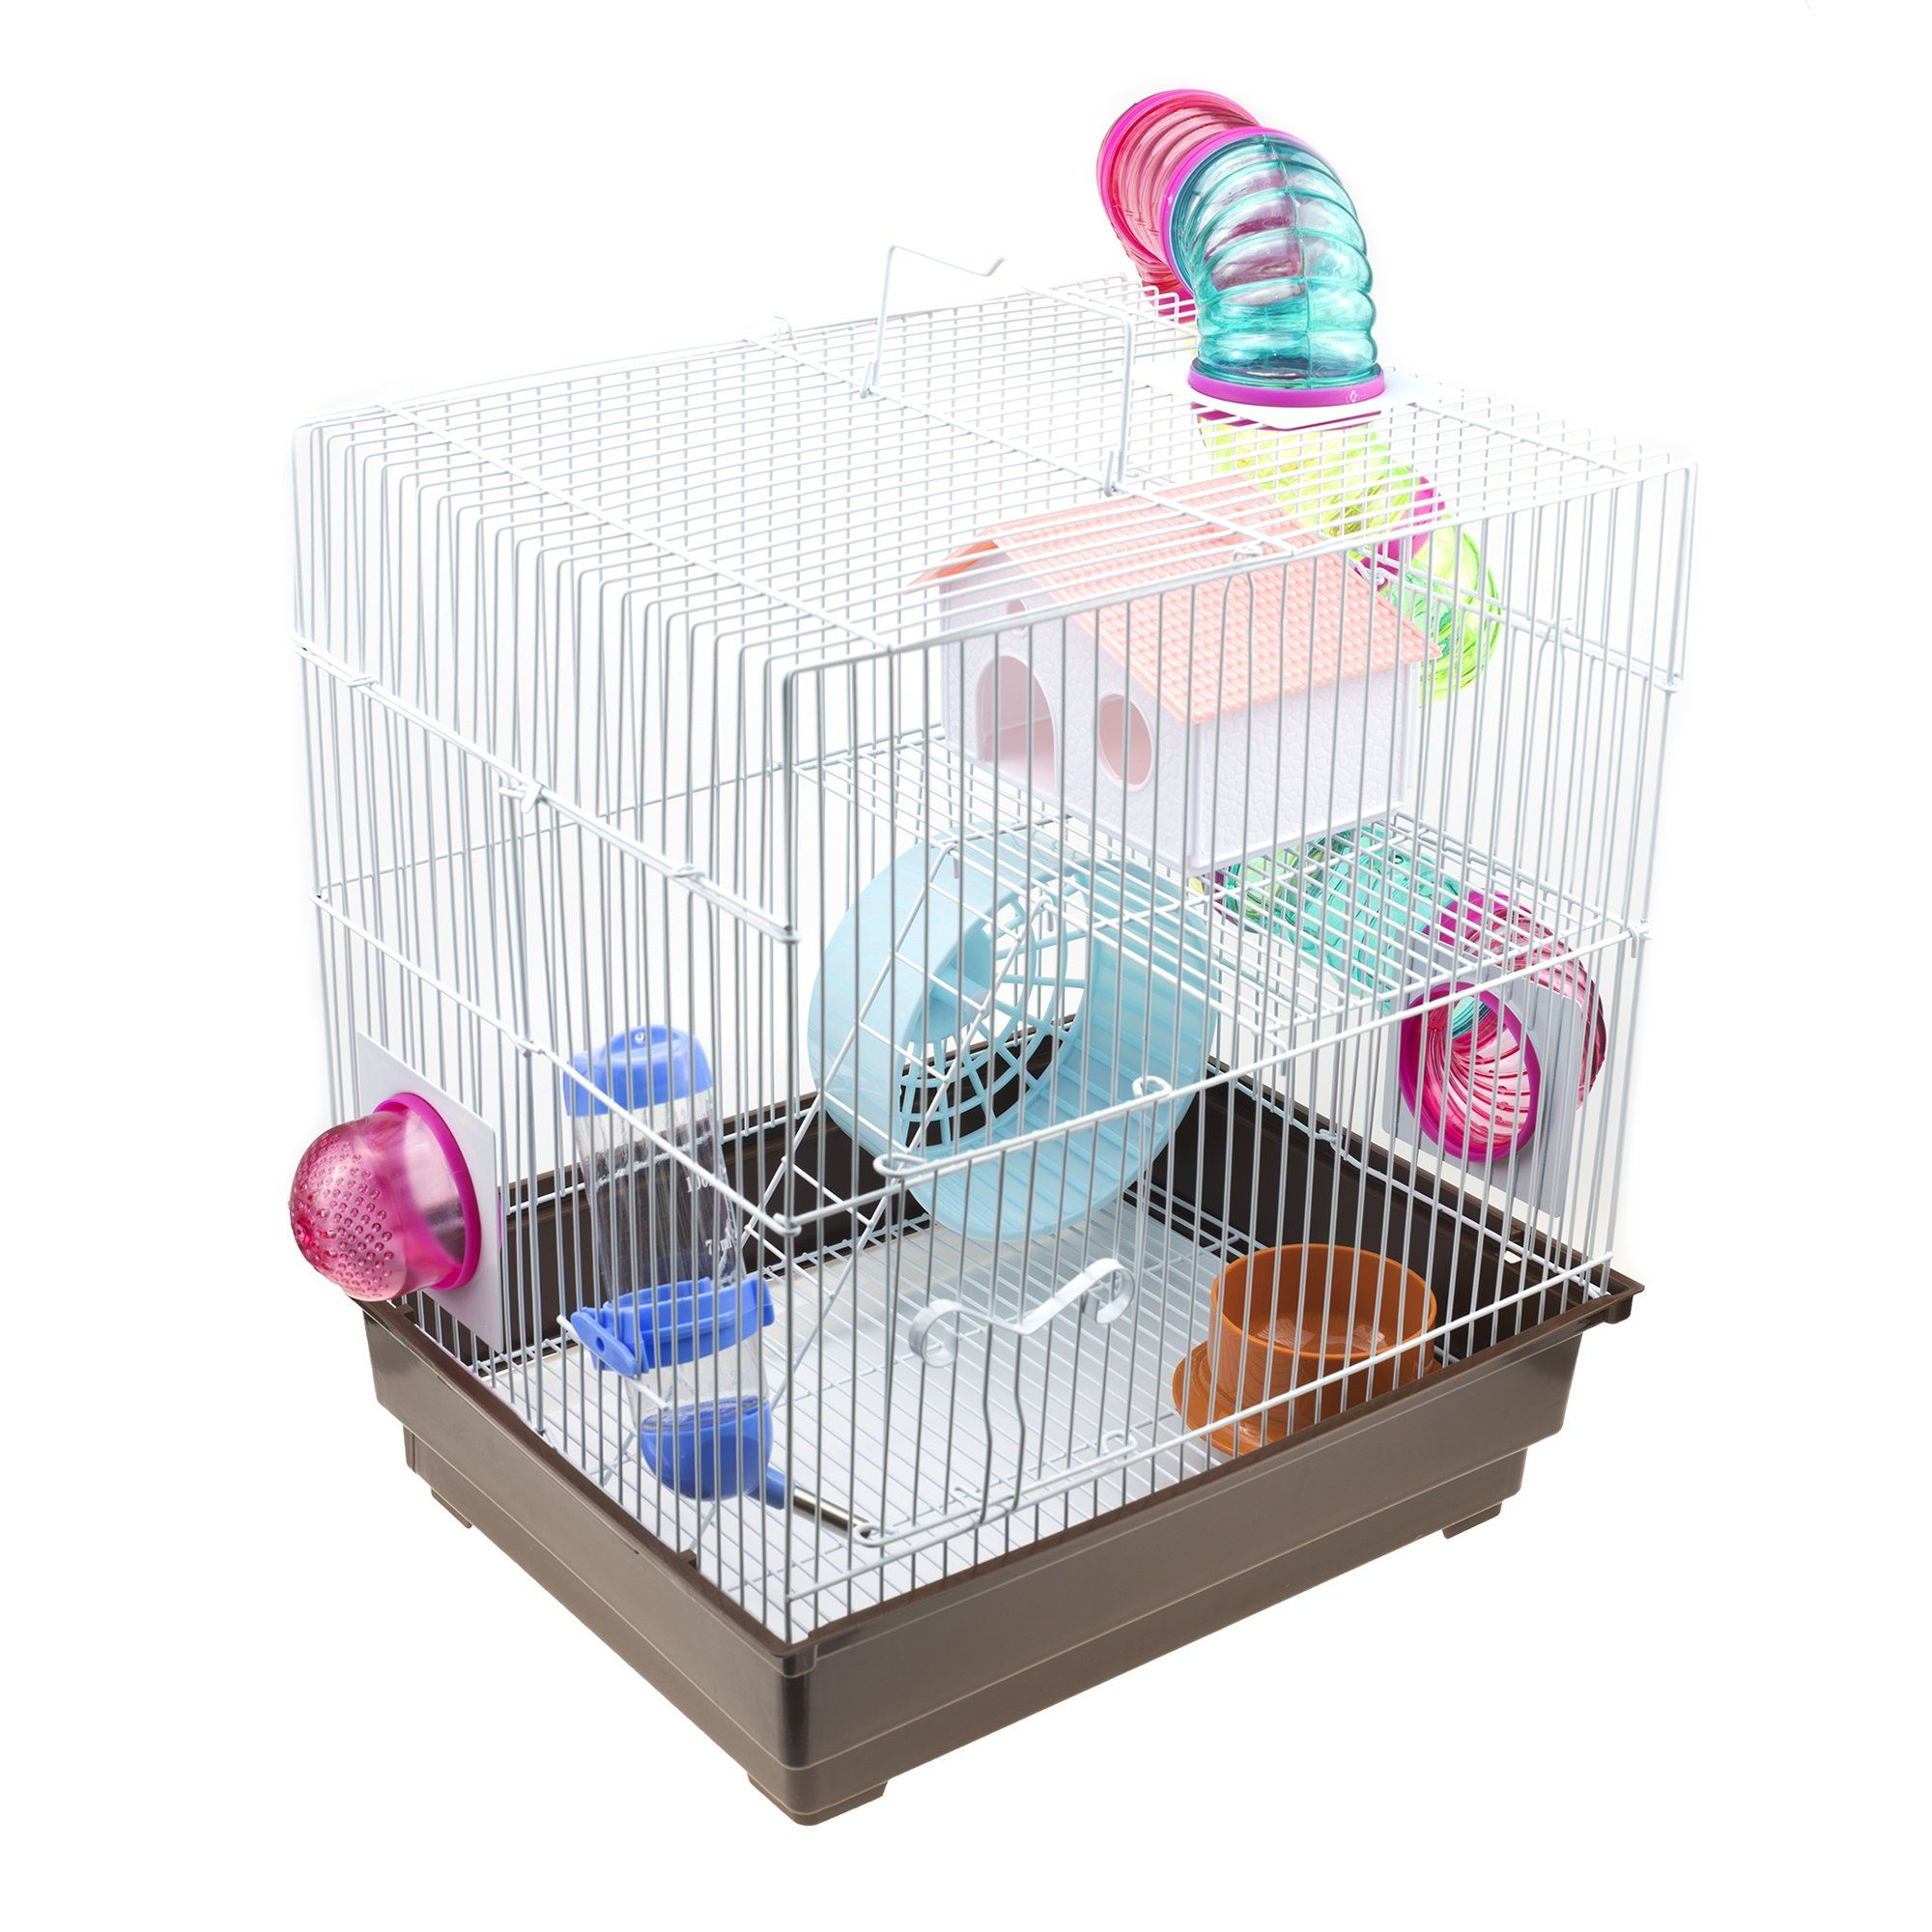 Gnb Pet Hamster Cage Diy With Tunnels Tubes Wheel 2level Habitat Brown You Could Get More Information By Clickin Small Animal Cage Hamster Cage Hamster Toys